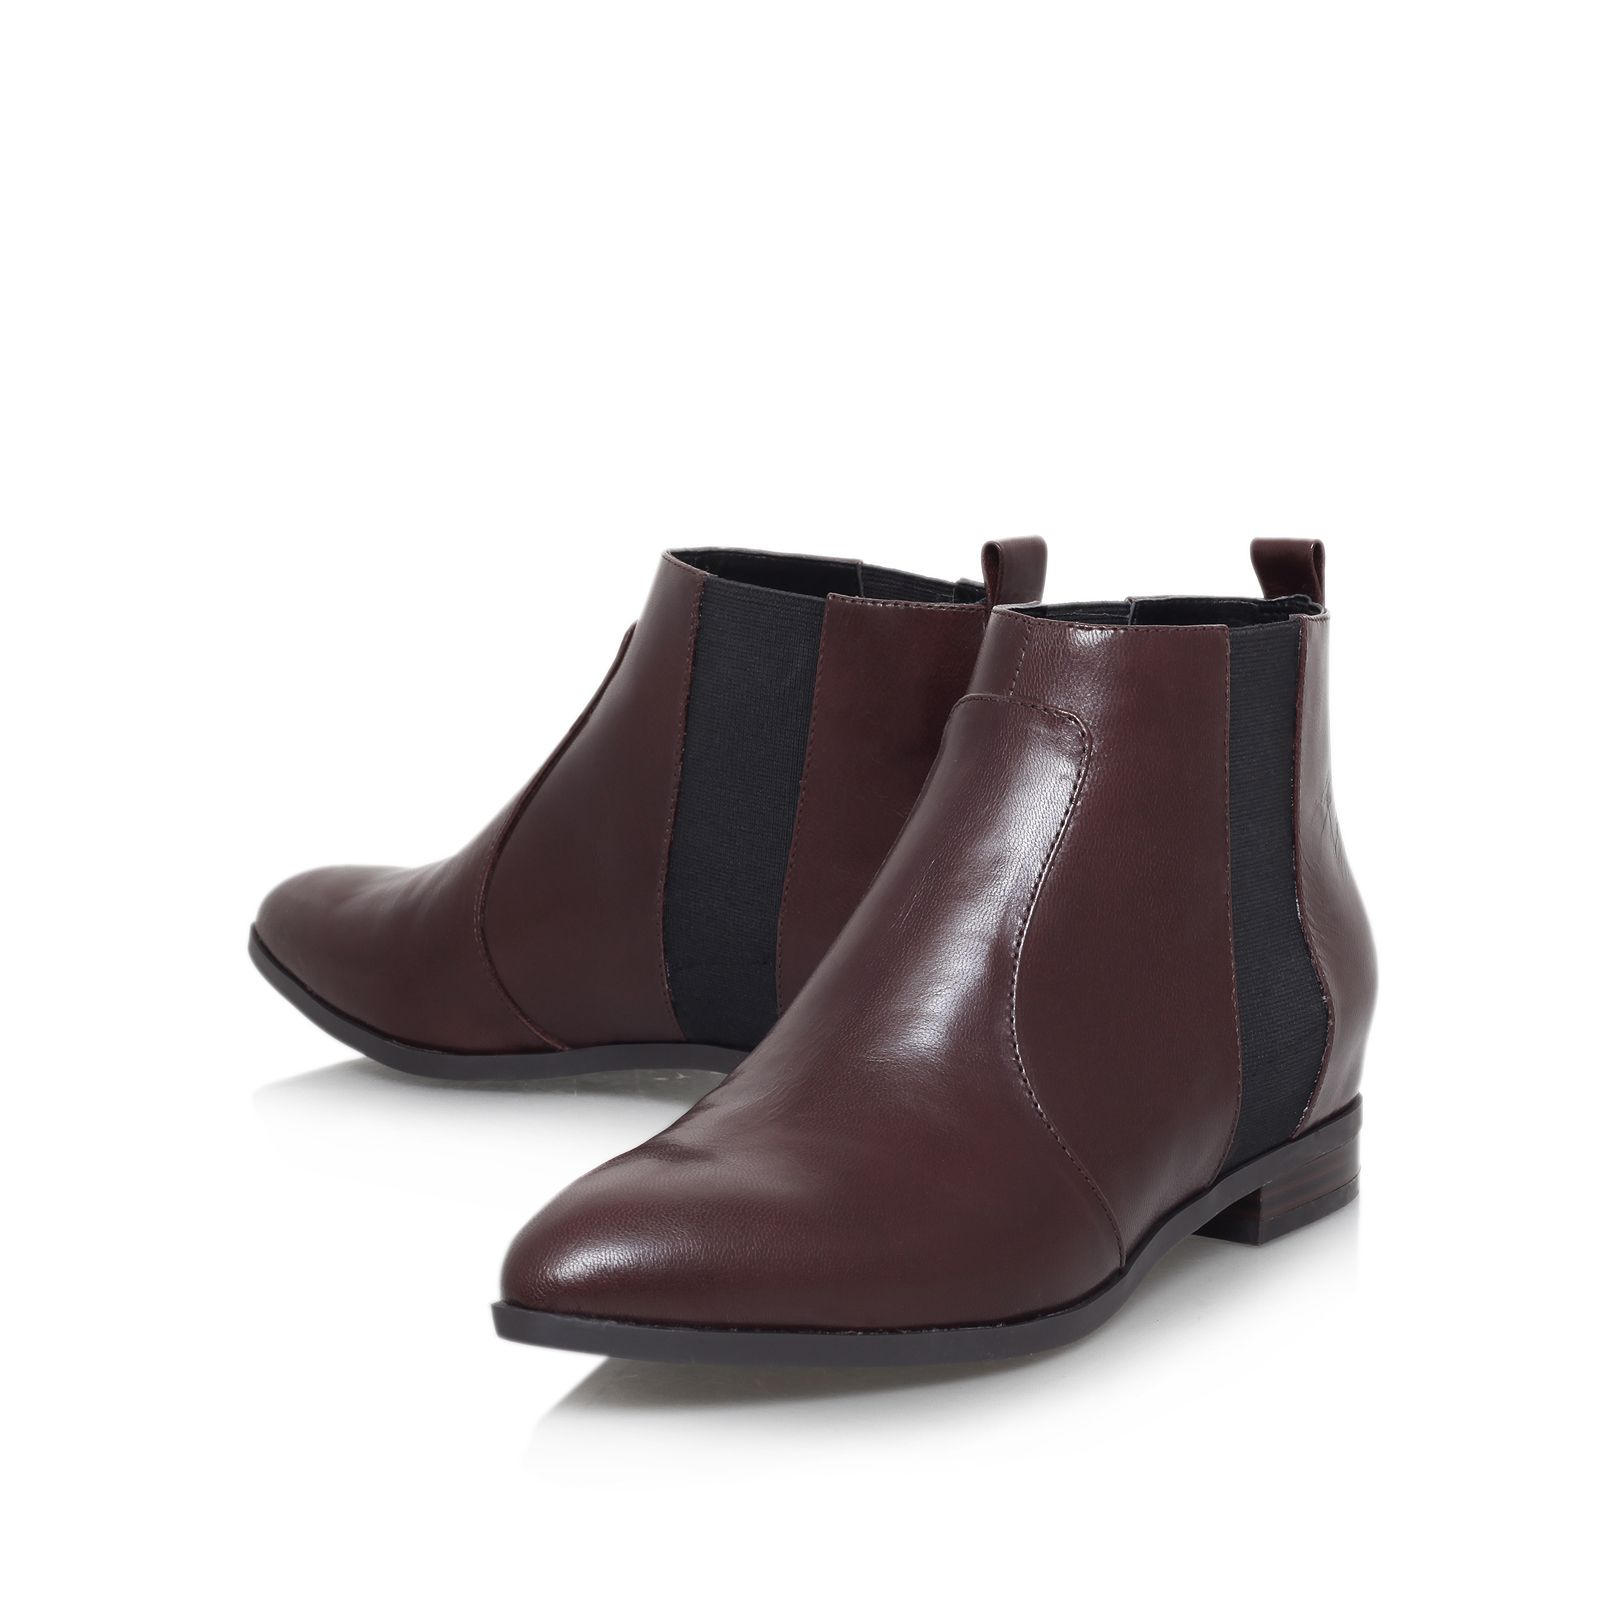 Nine west Orangesky Flat Slip On Ankle Boots in Brown | Lyst